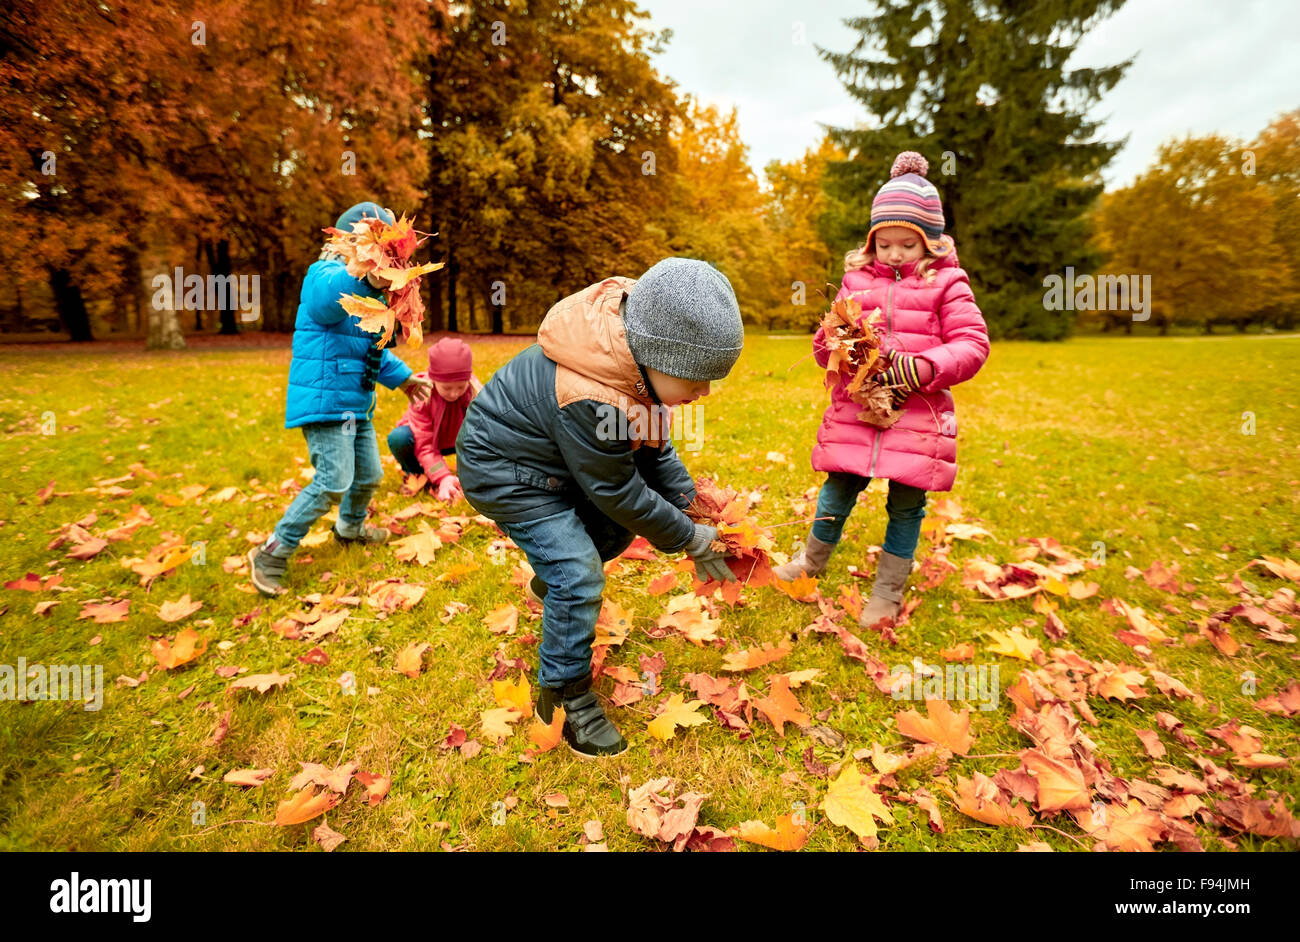 Group Of Children Collecting Leaves In Autumn Park Stock